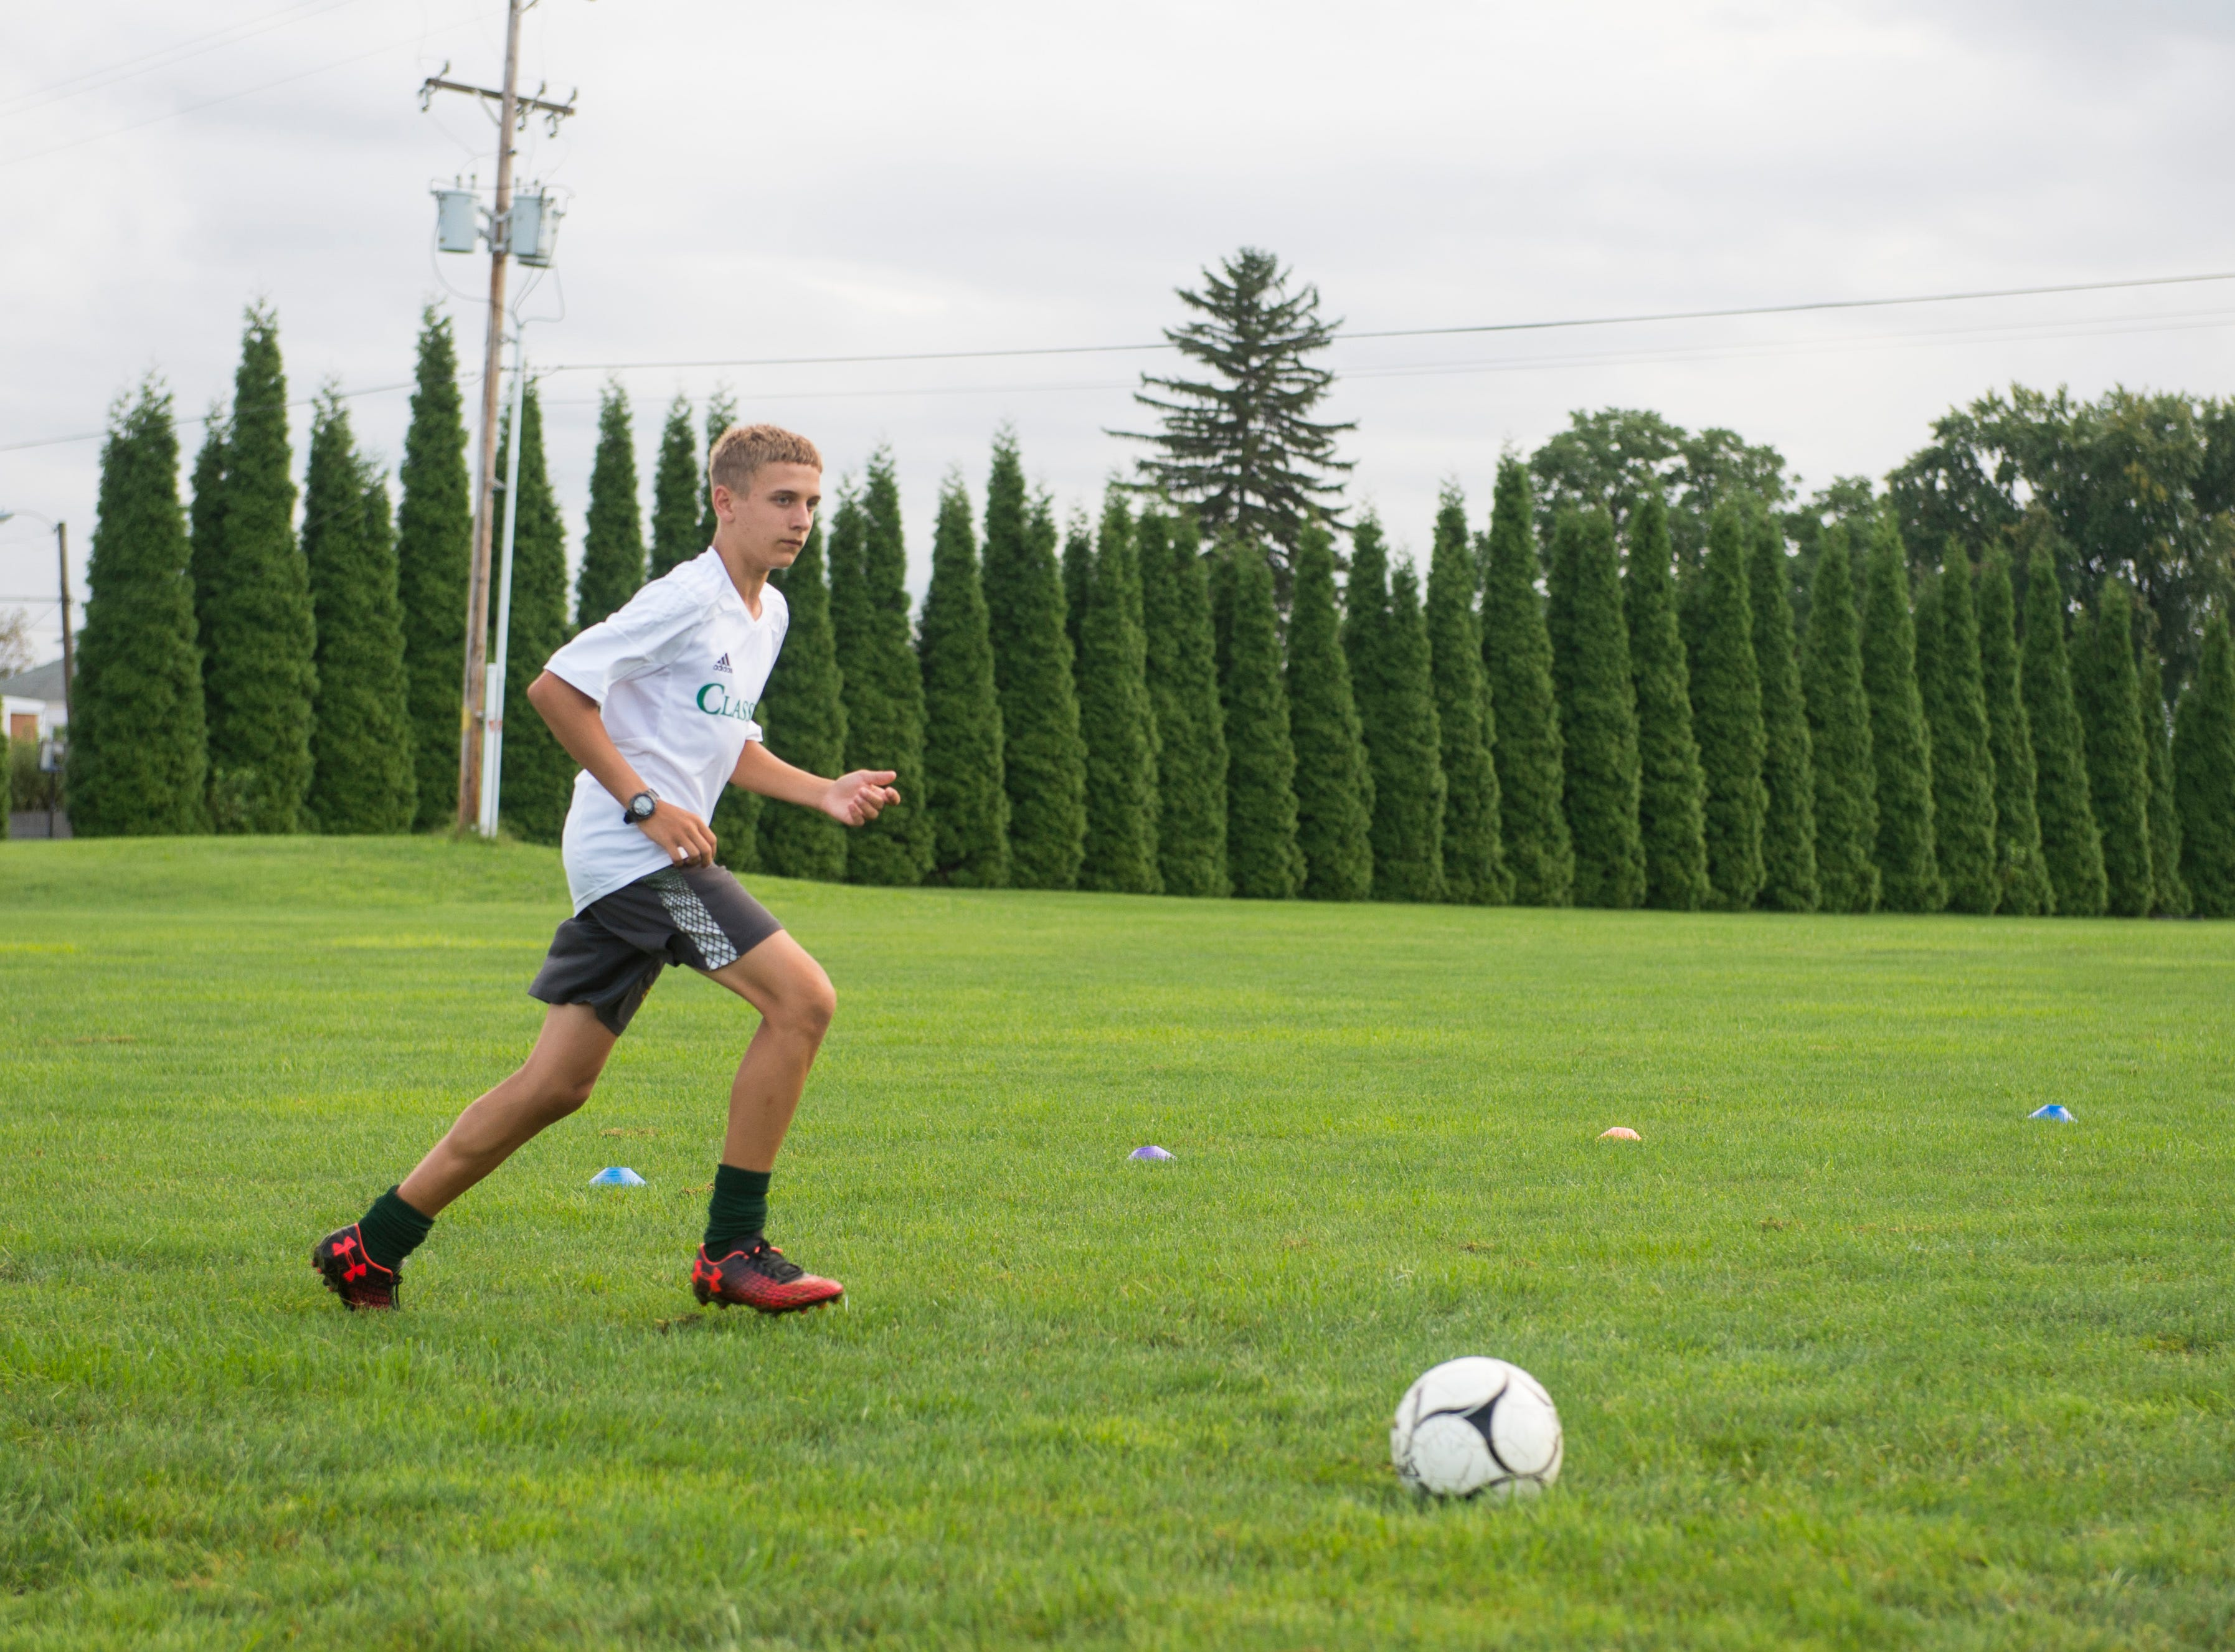 York Catholic boys' soccer takes the field during the first day of fall practice.